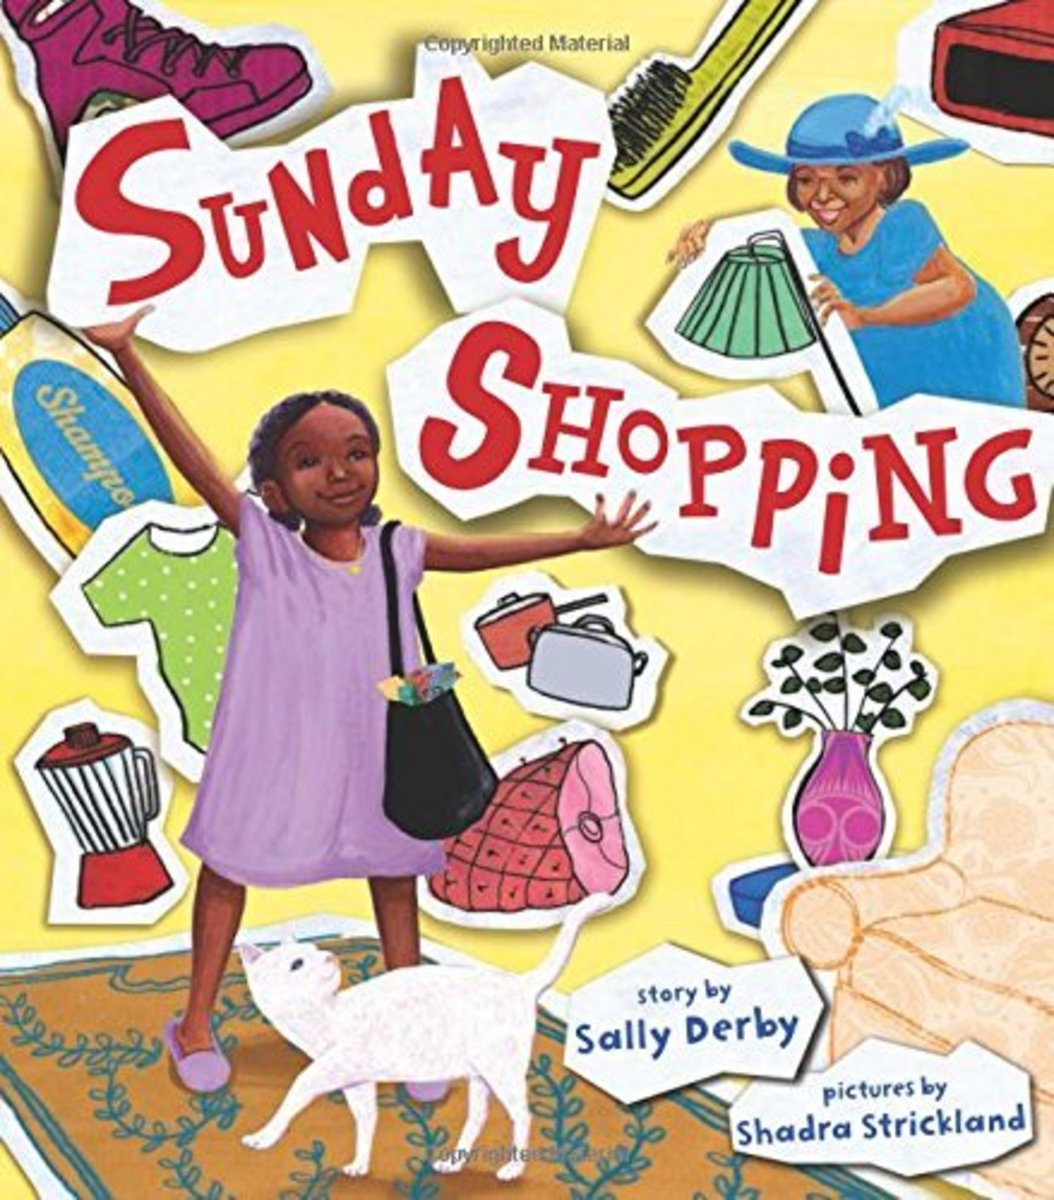 Sunday Shopping by Sally Derby